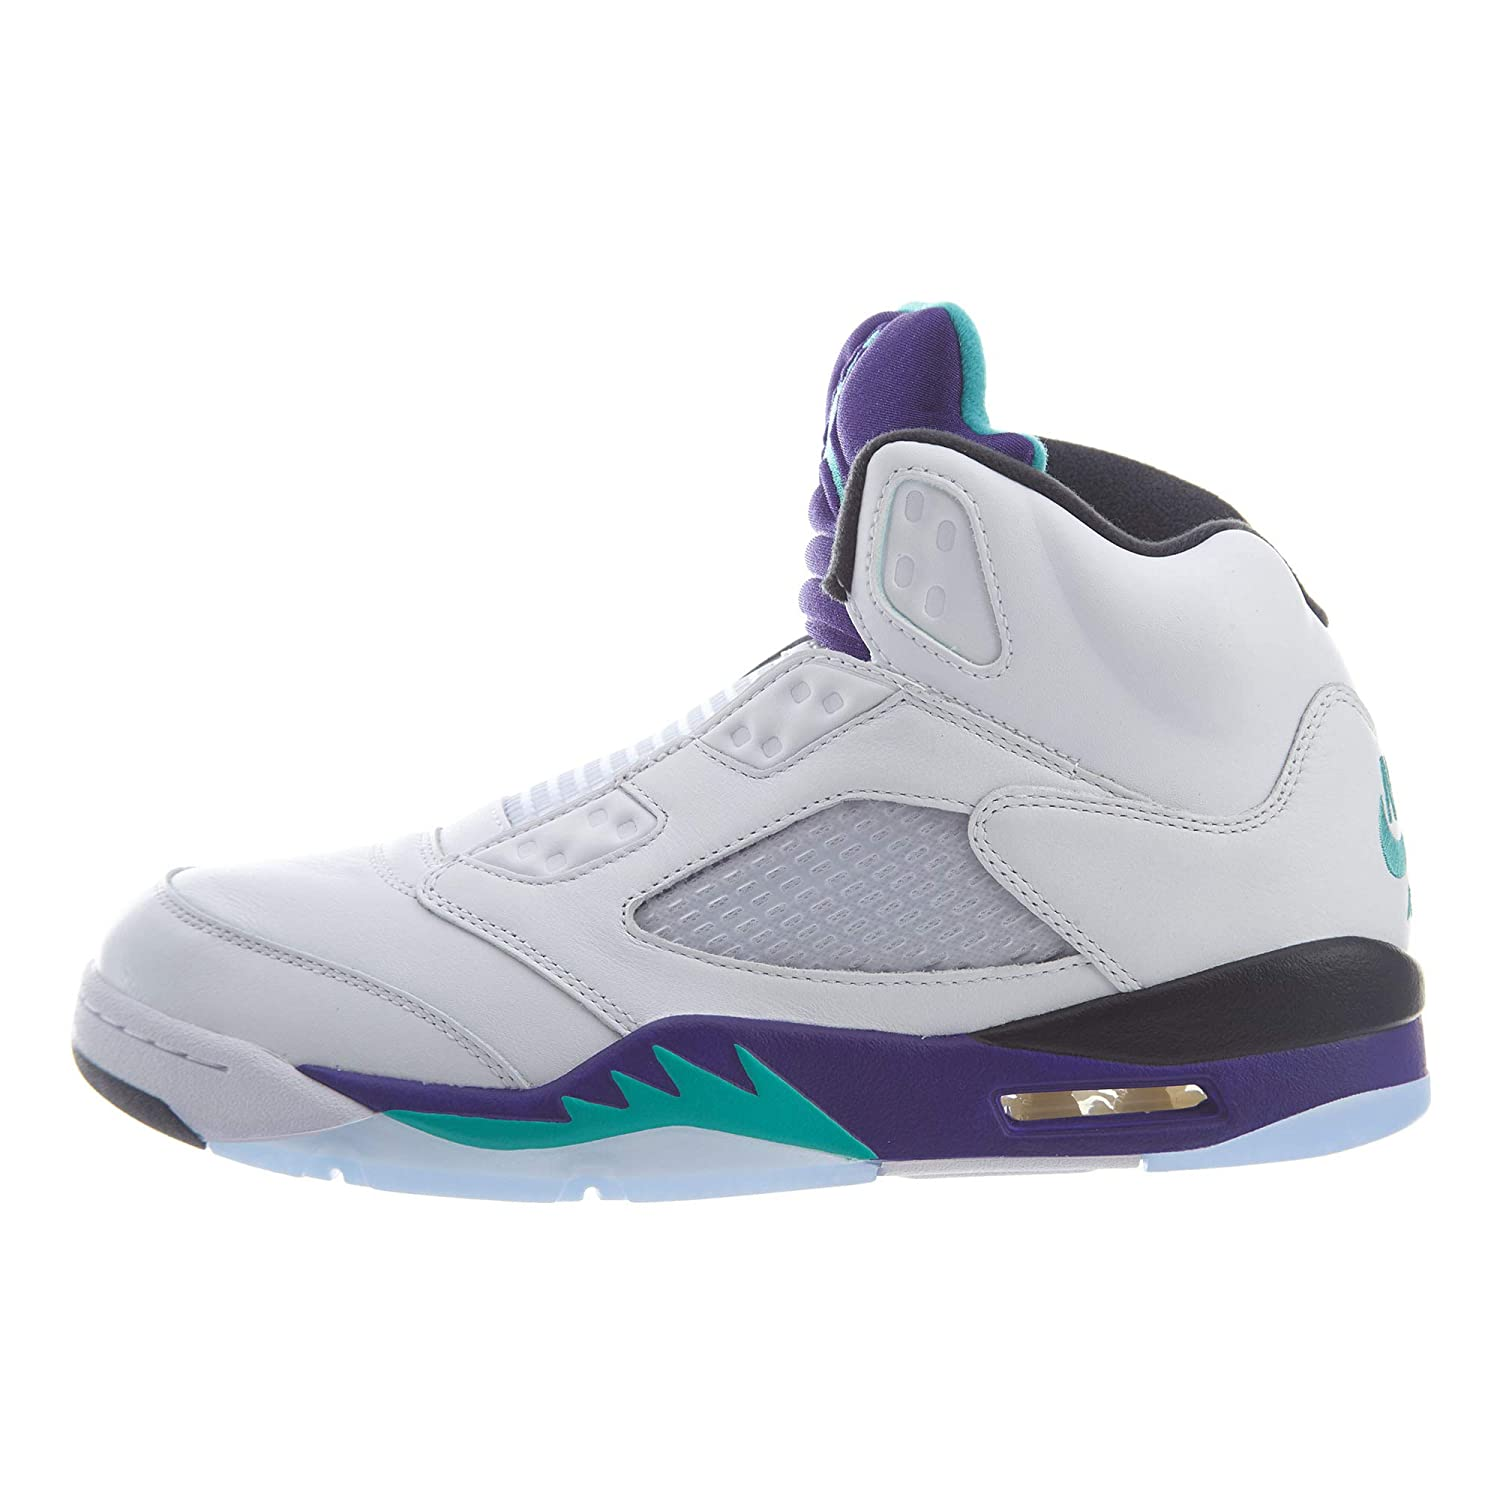 online retailer d2431 02944 Amazon.com | Jordan Nike 5 Retro Grape Fresh Prince Mens ...